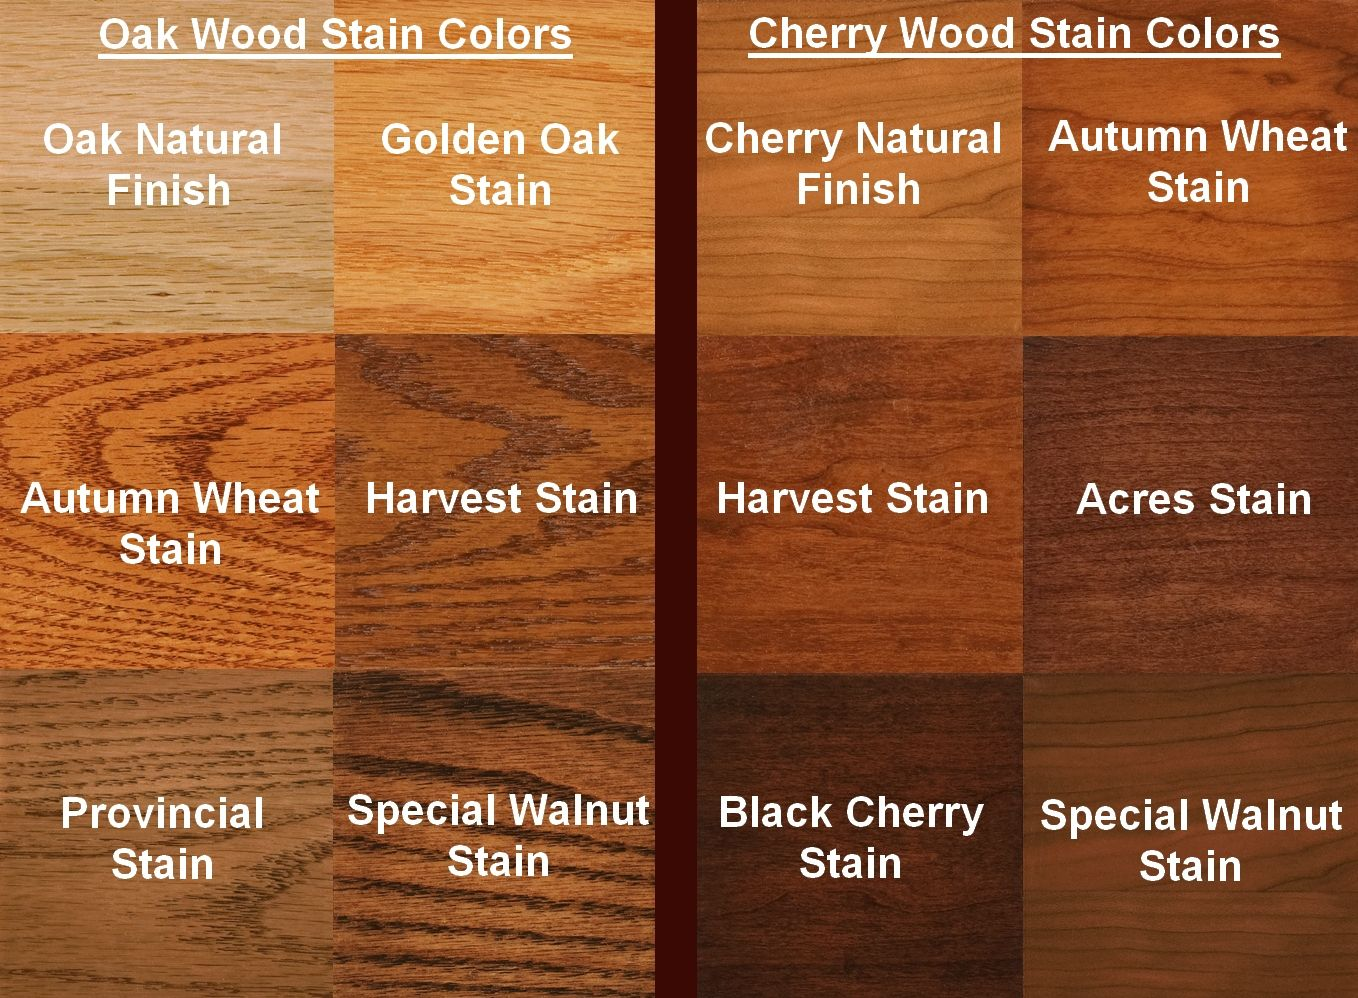 Kitchen Cherry Oak Stain Colors Final High Def